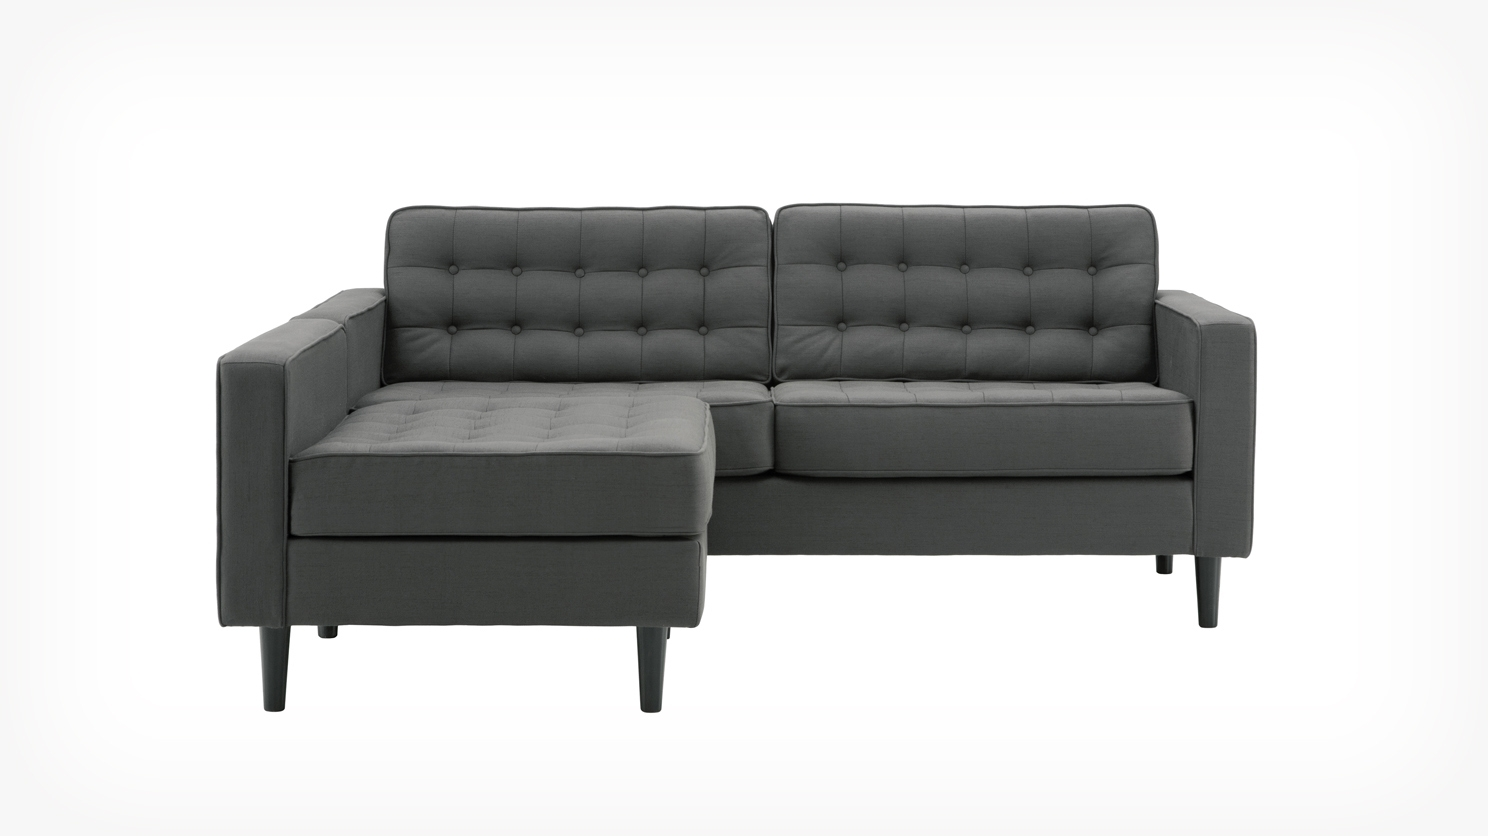 Reverie Apartment 2 Piece Sectional Sofa With Chaise – Fabric With Eq3 Sectional Sofas (View 2 of 20)